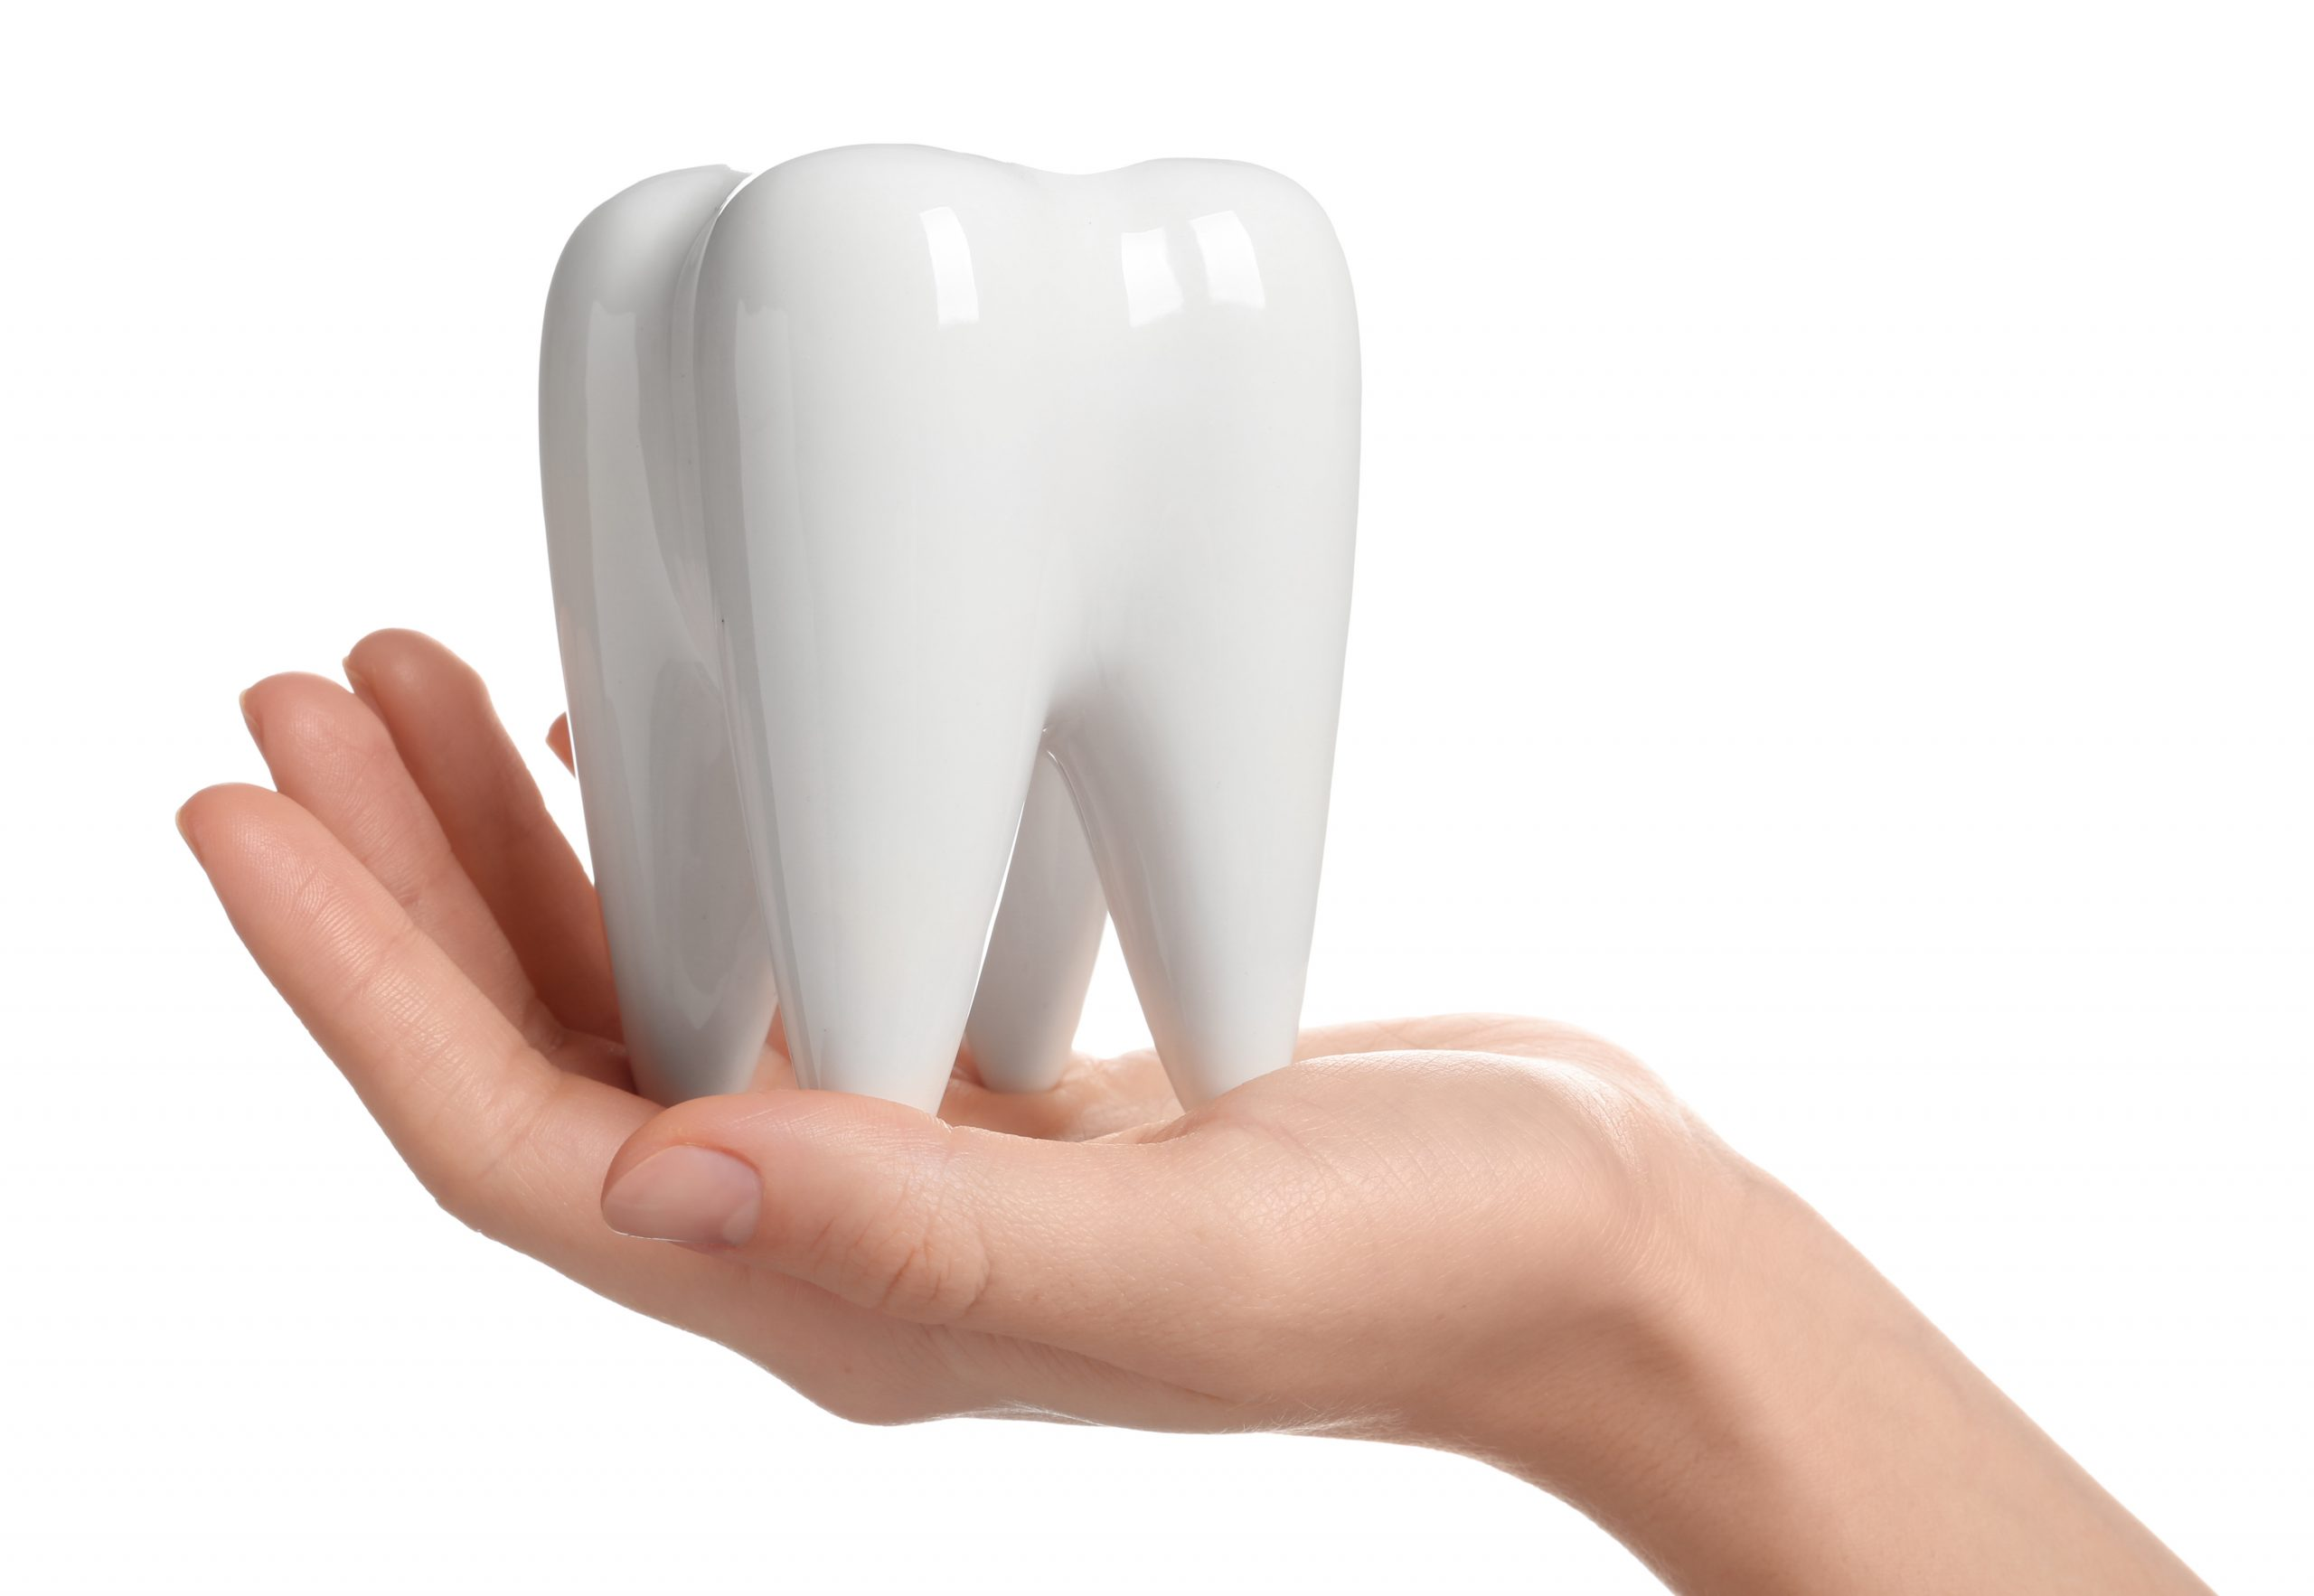 Woman holding ceramic model of tooth on white background